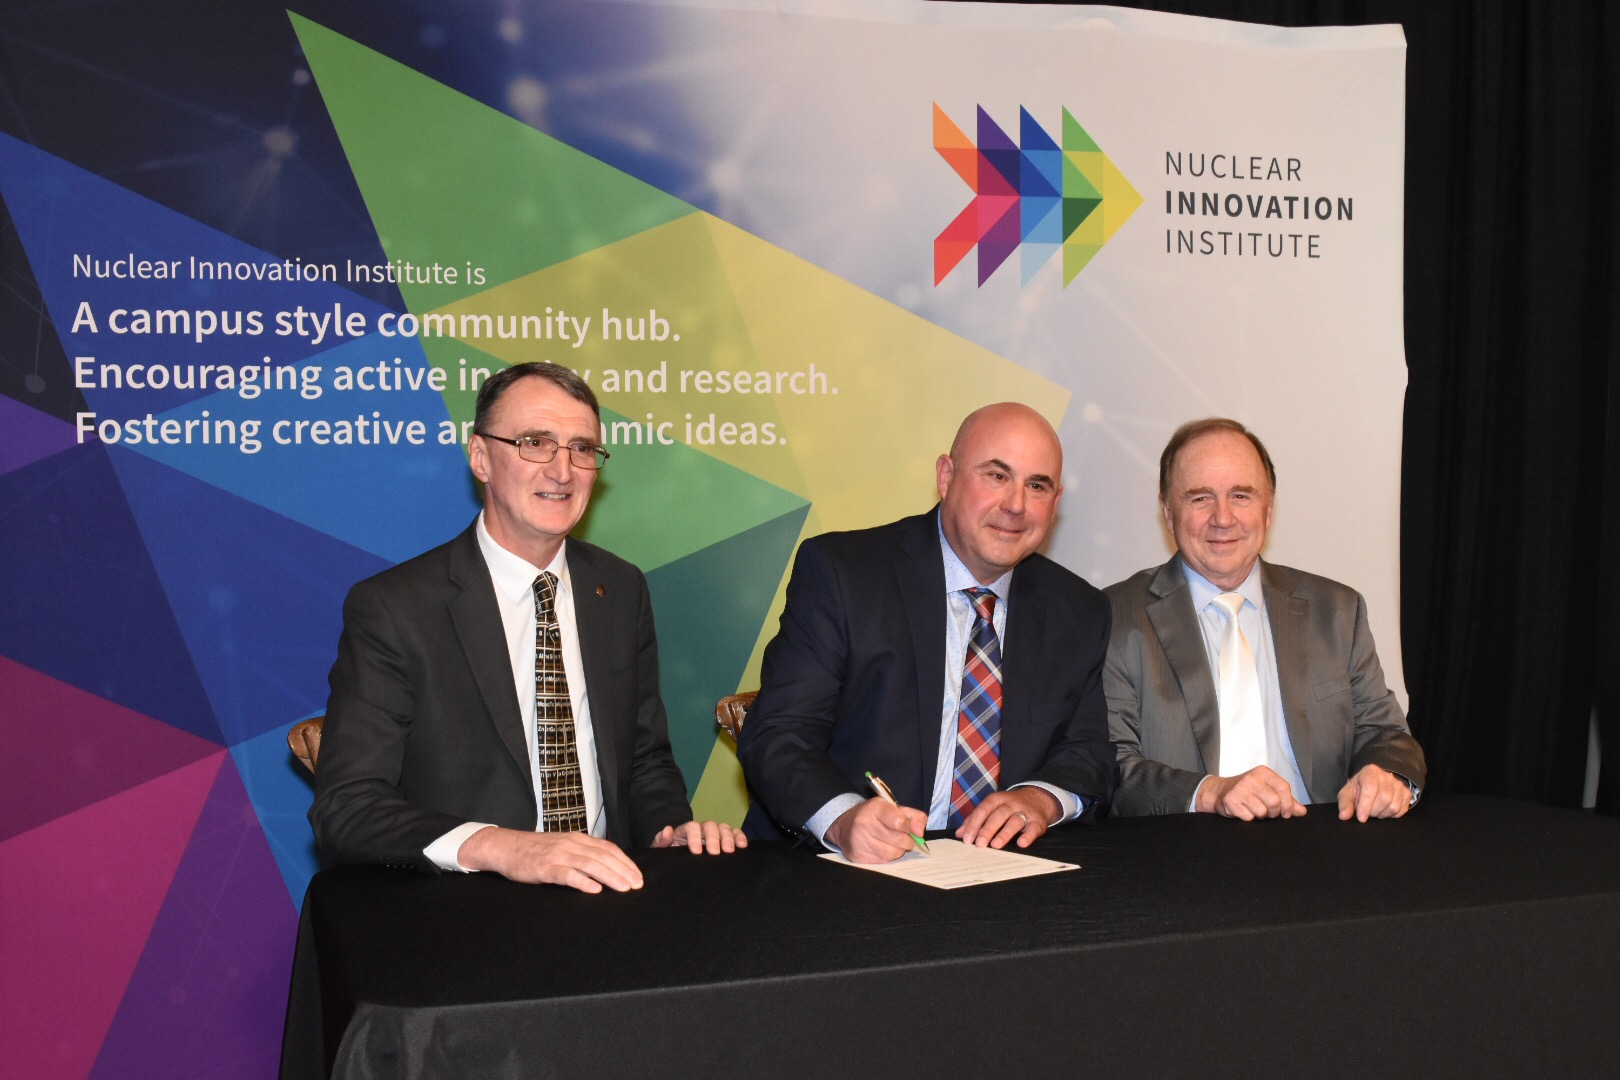 Nuclear Innovation Institute signs MOU with University of Strathclyde